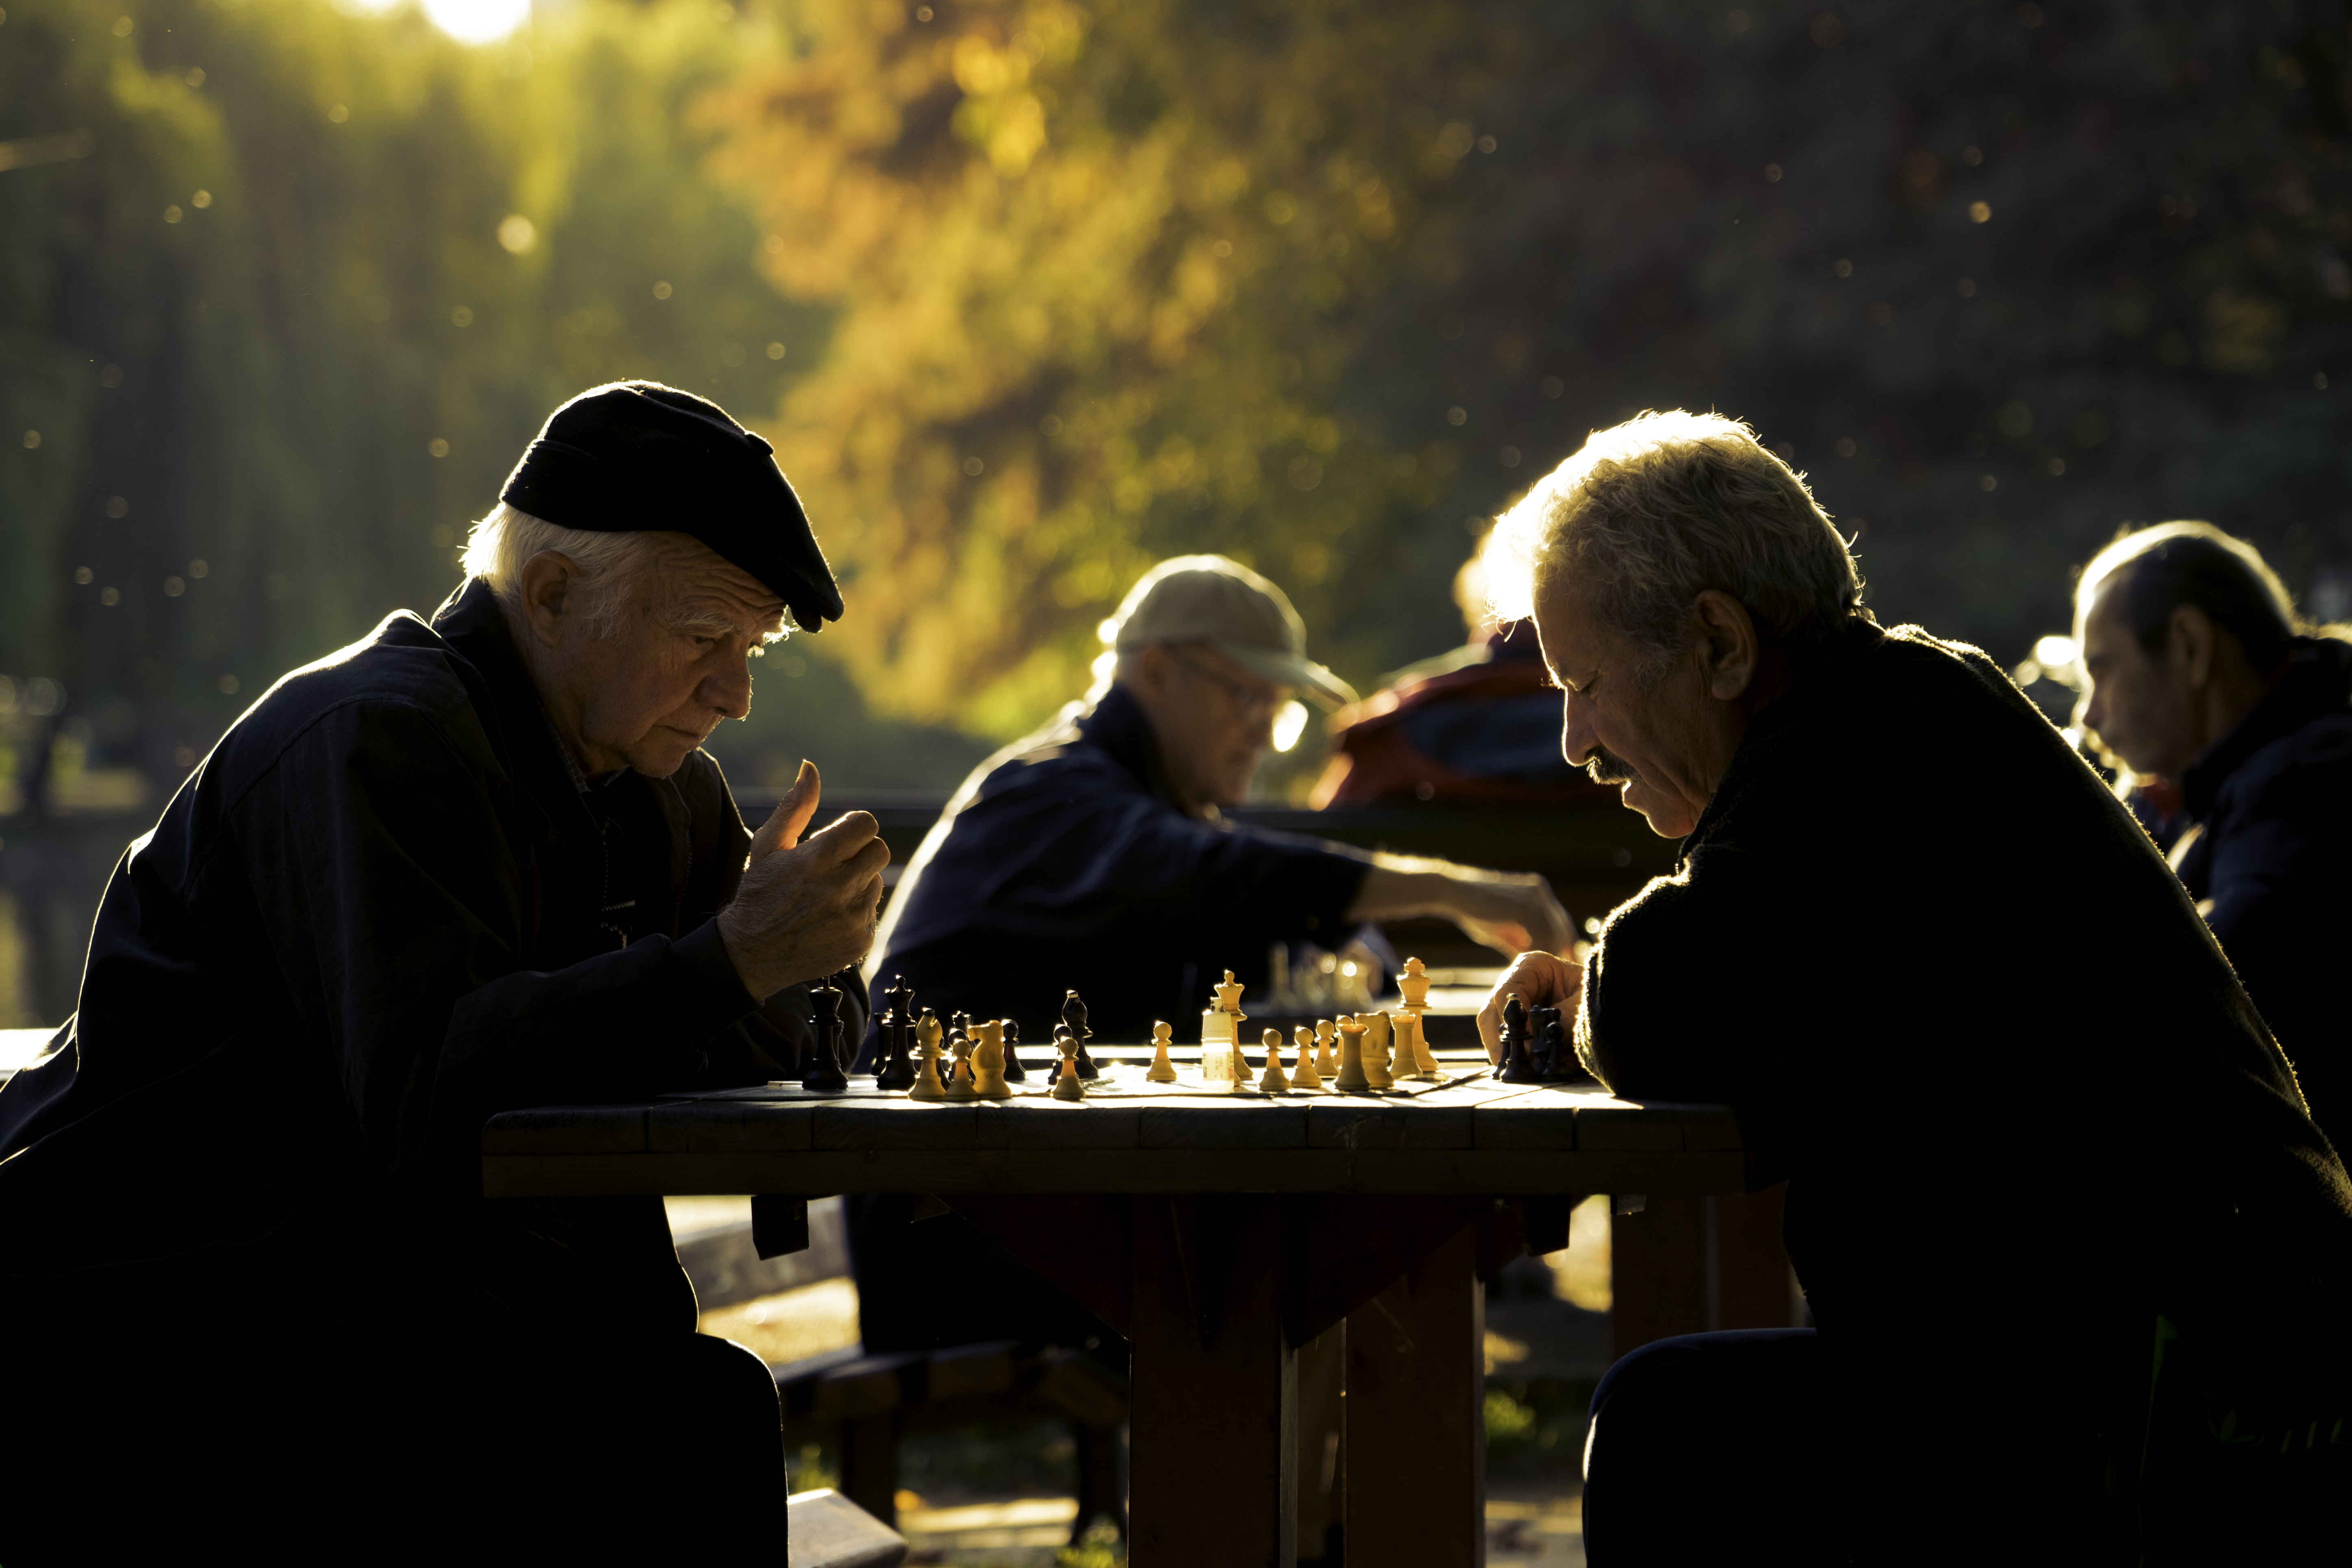 two man playing chess in shallow focus lens